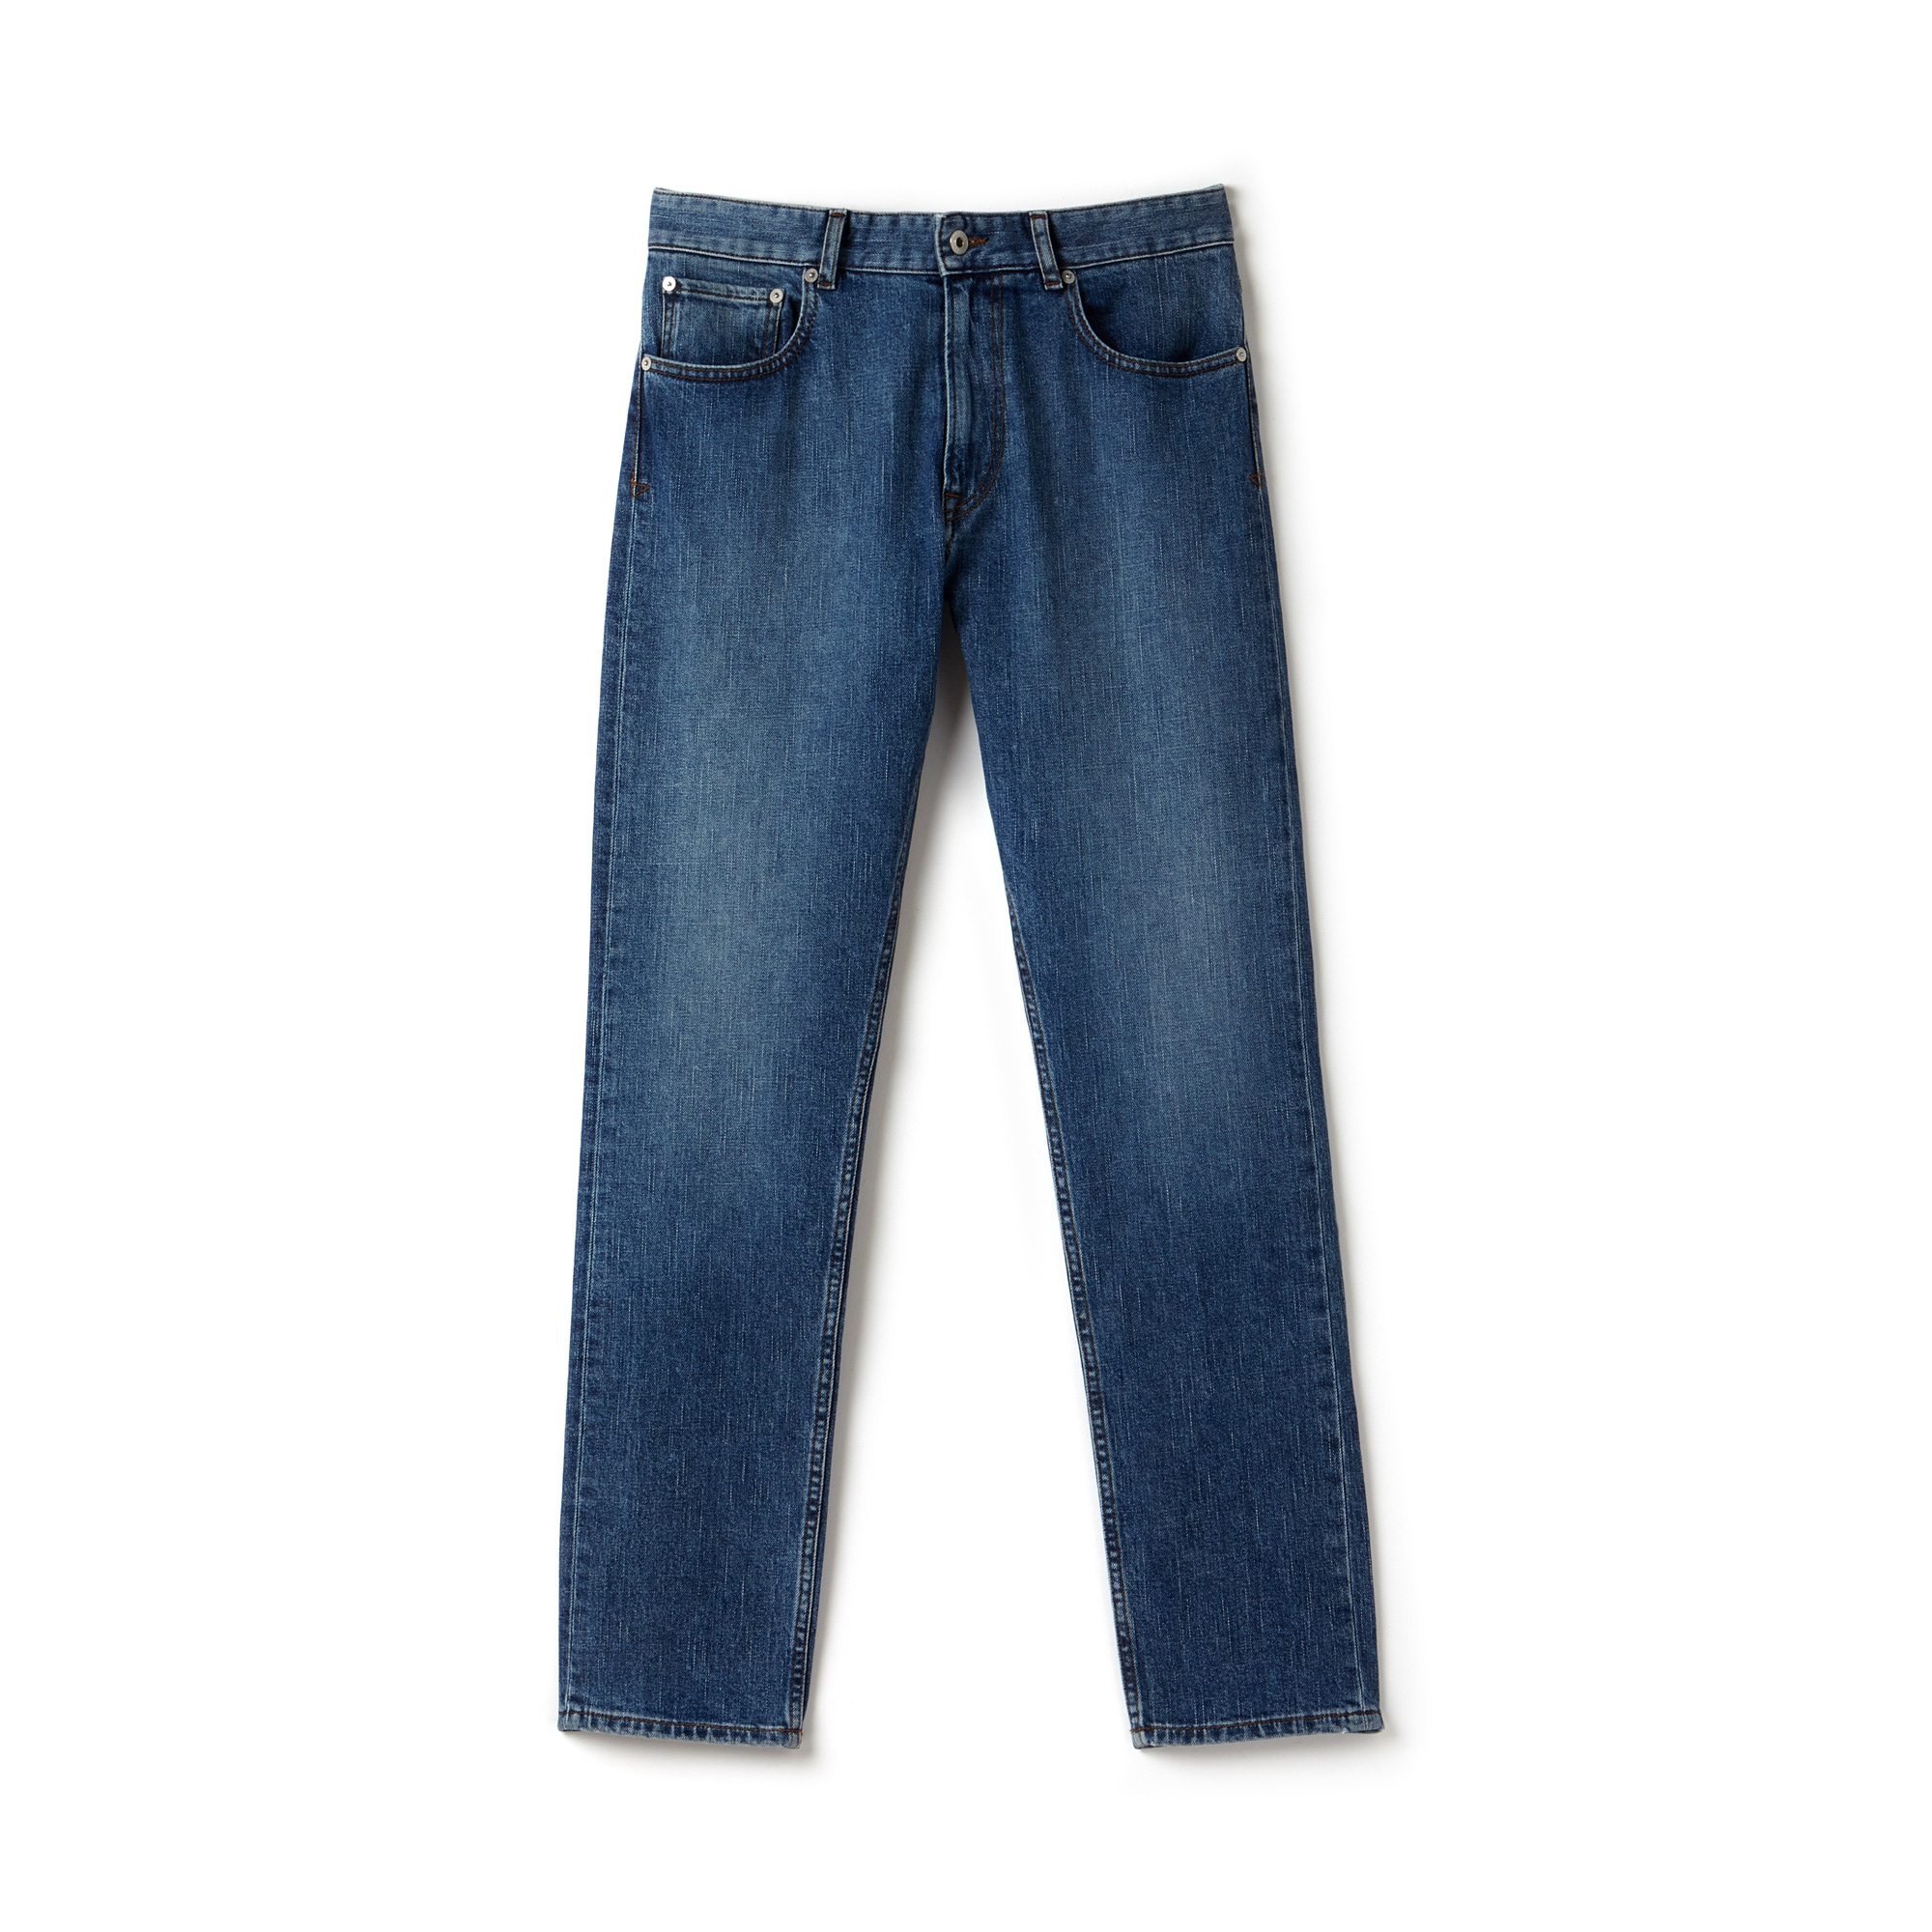 Men's Slim Fit Five-Pocket Stretch Cotton Denim Jeans